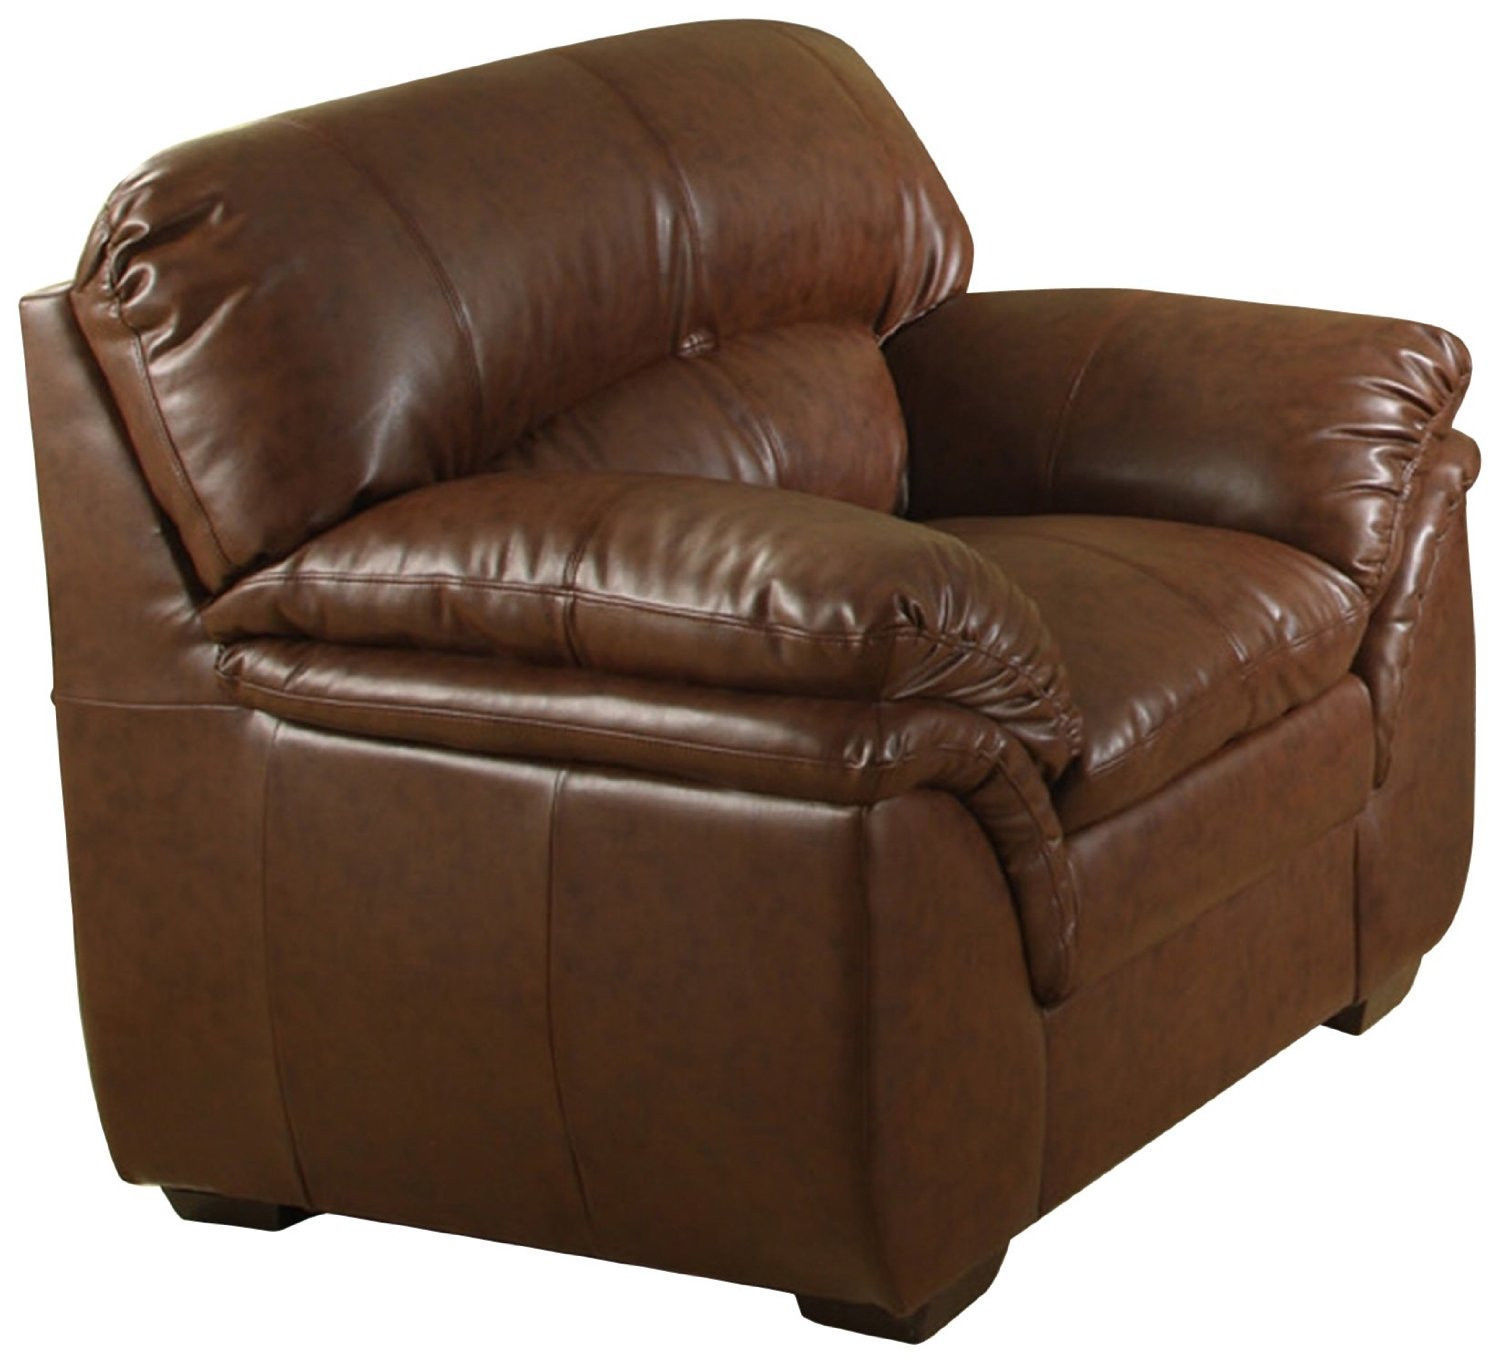 Bonded leather chair furniture living room den office for Overstuffed armchair